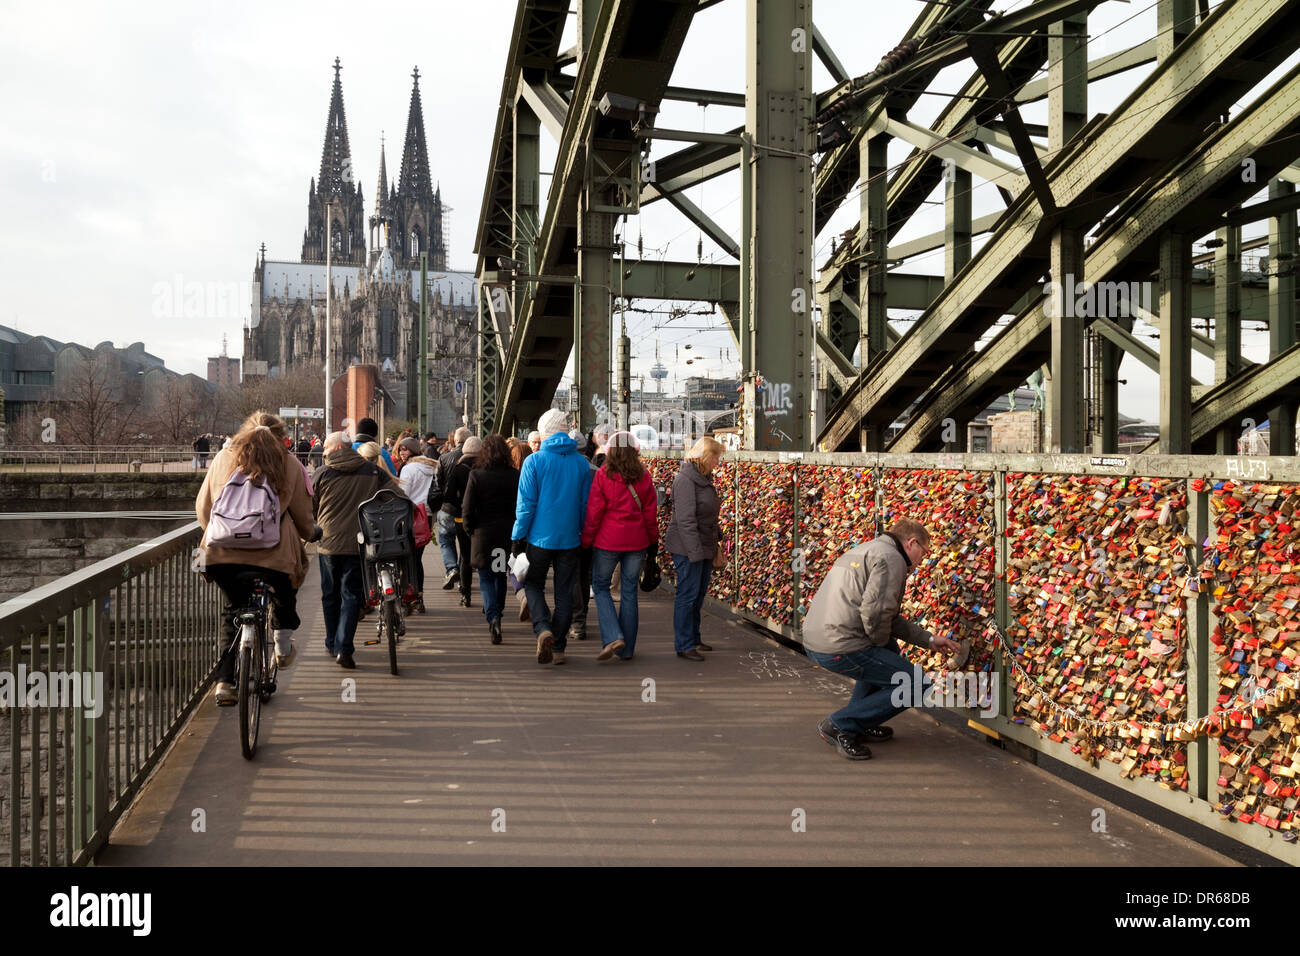 Locks Bridge Germany Stock Photos & Locks Bridge Germany ...